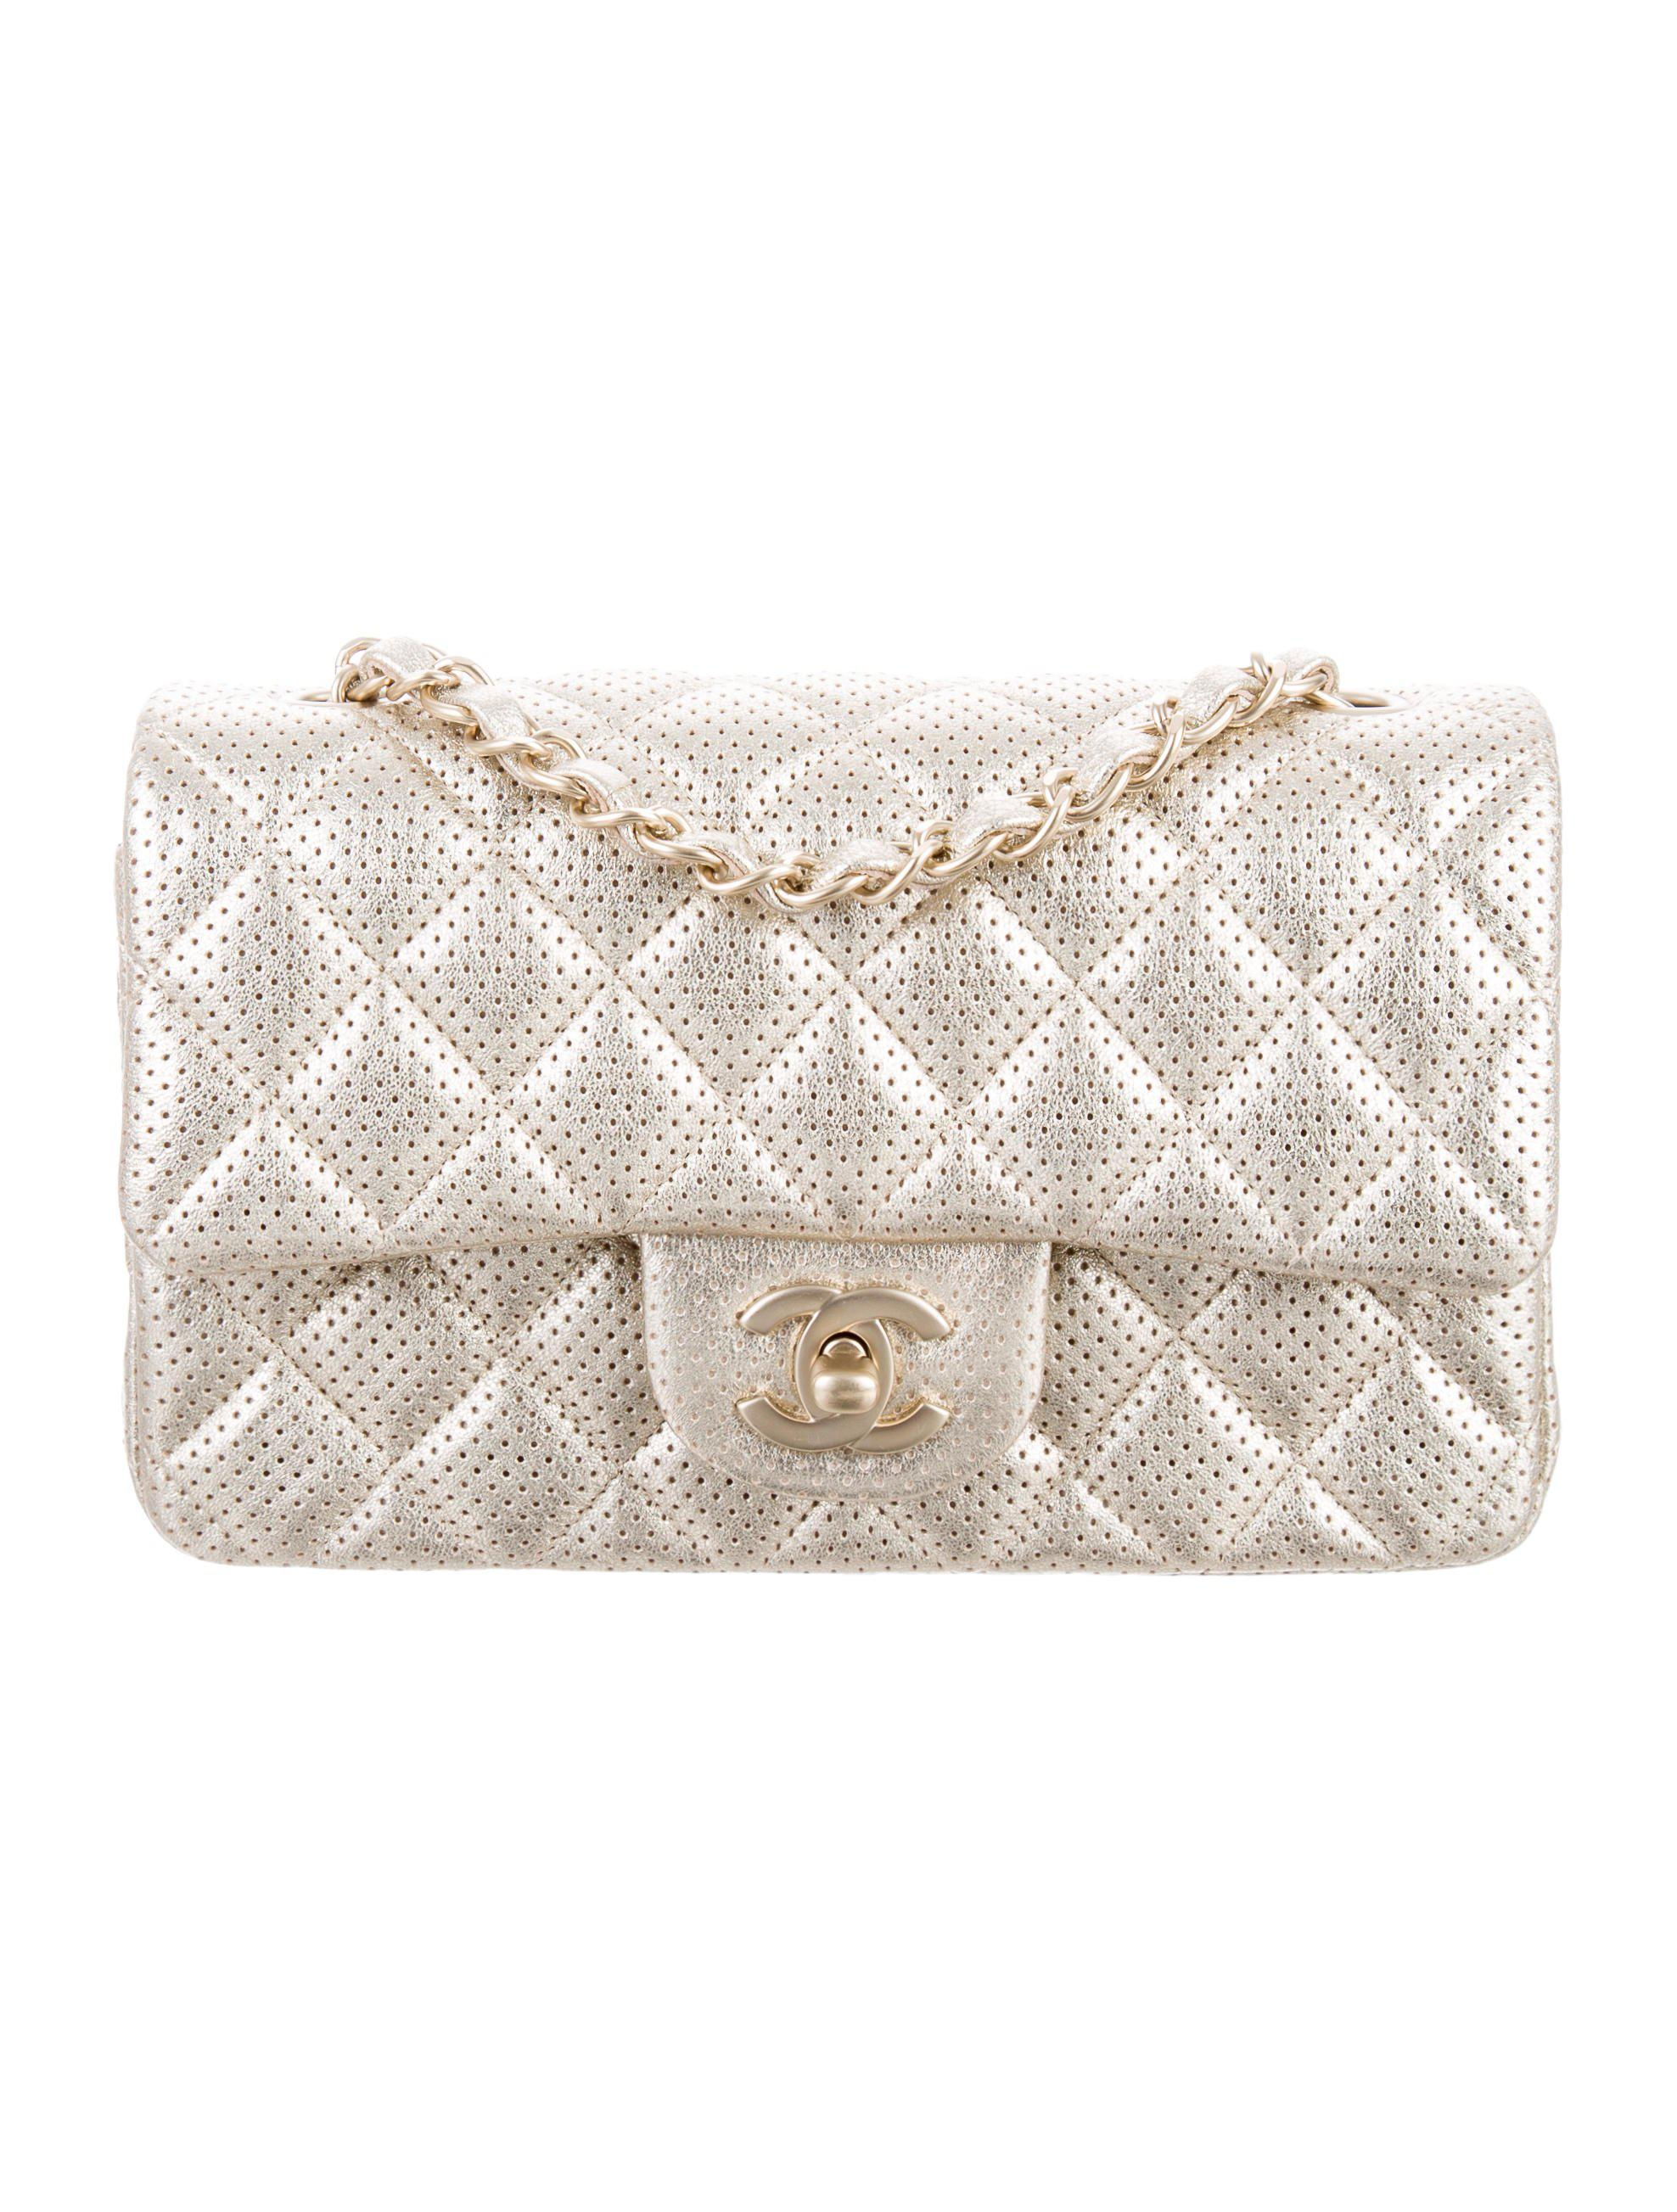 Lyst - Chanel 2015 Perforated Classic New Mini Single Flap Bag in ... 4145dcec8f0b3